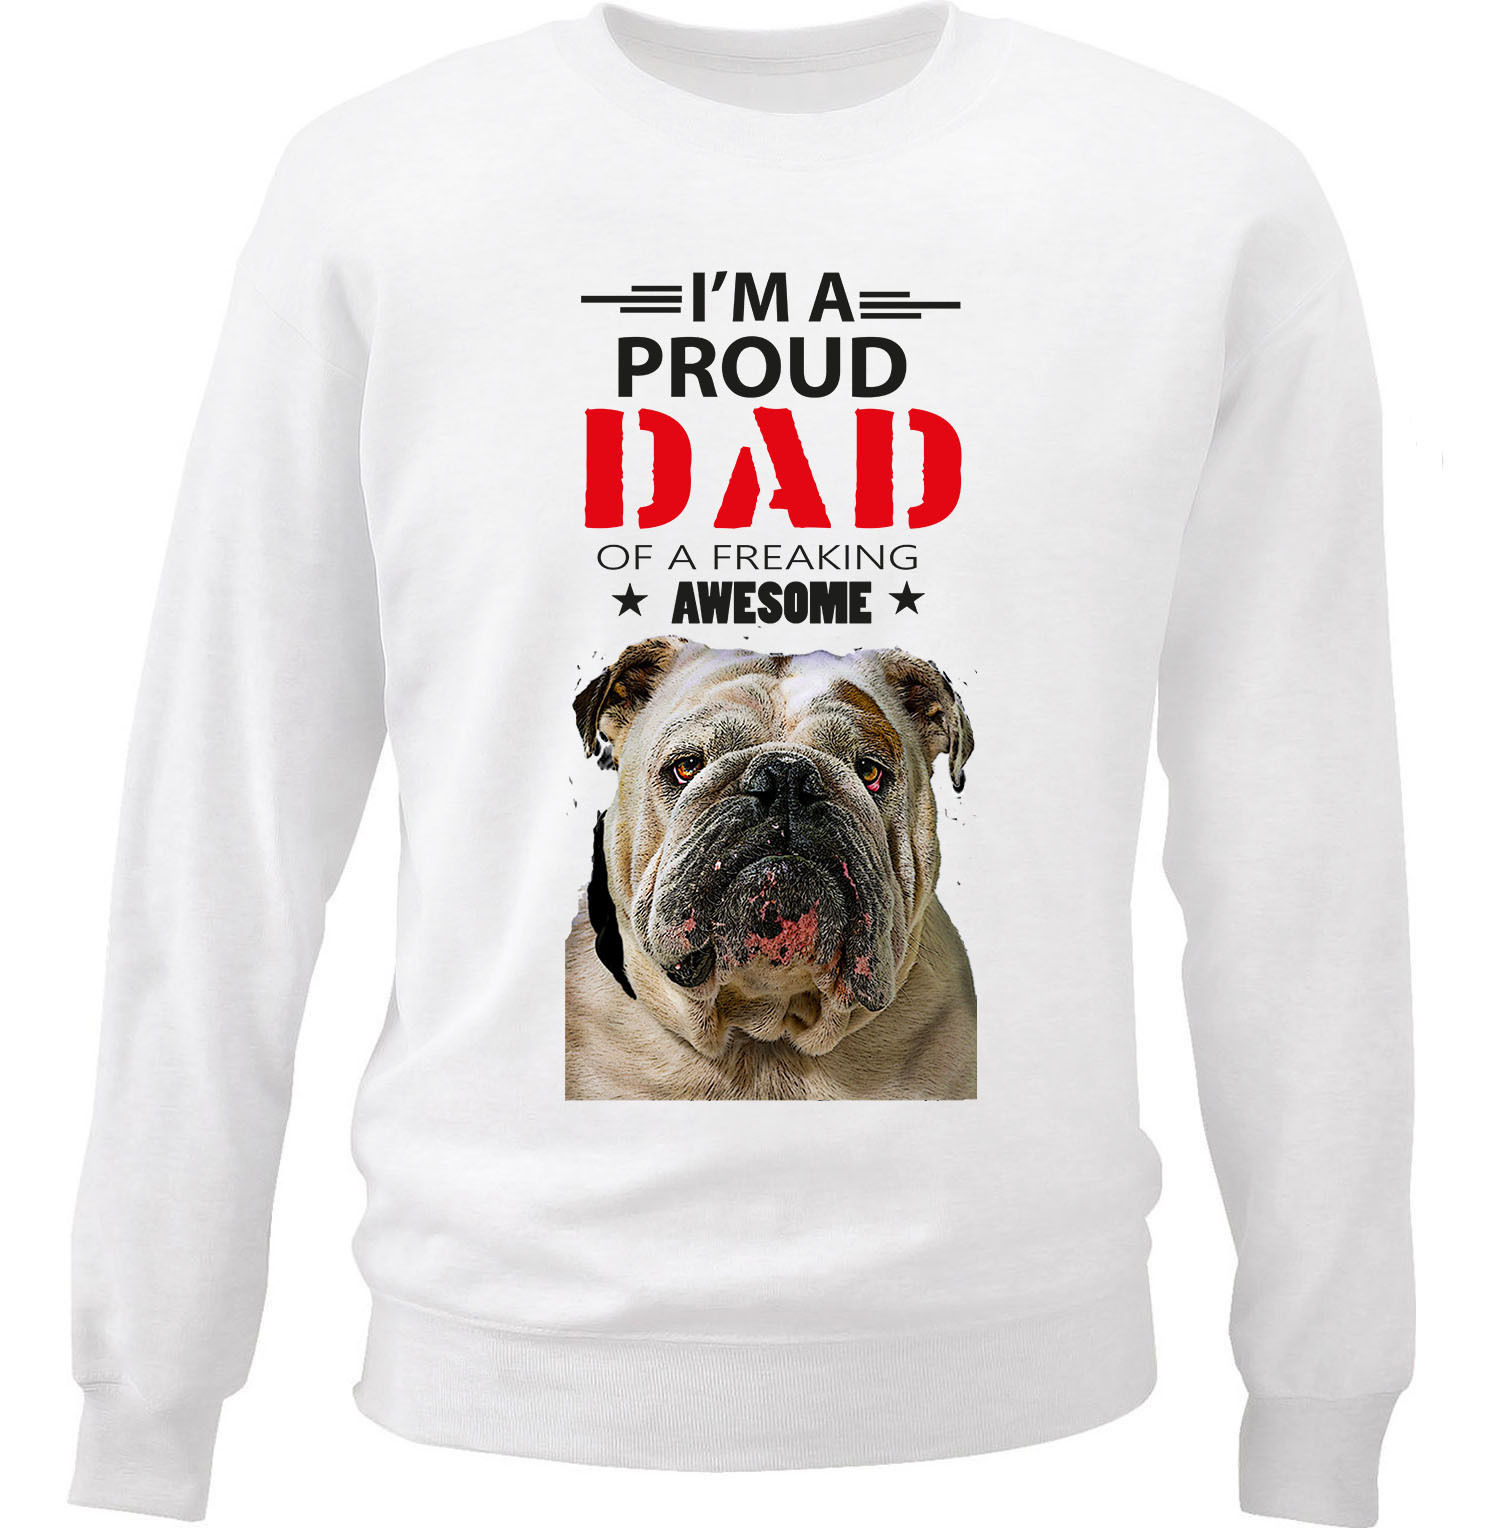 BRITISH BULLDOG 2 - IM A PROUD DAD - NEW WHITE COTTON SWEATSHIRT